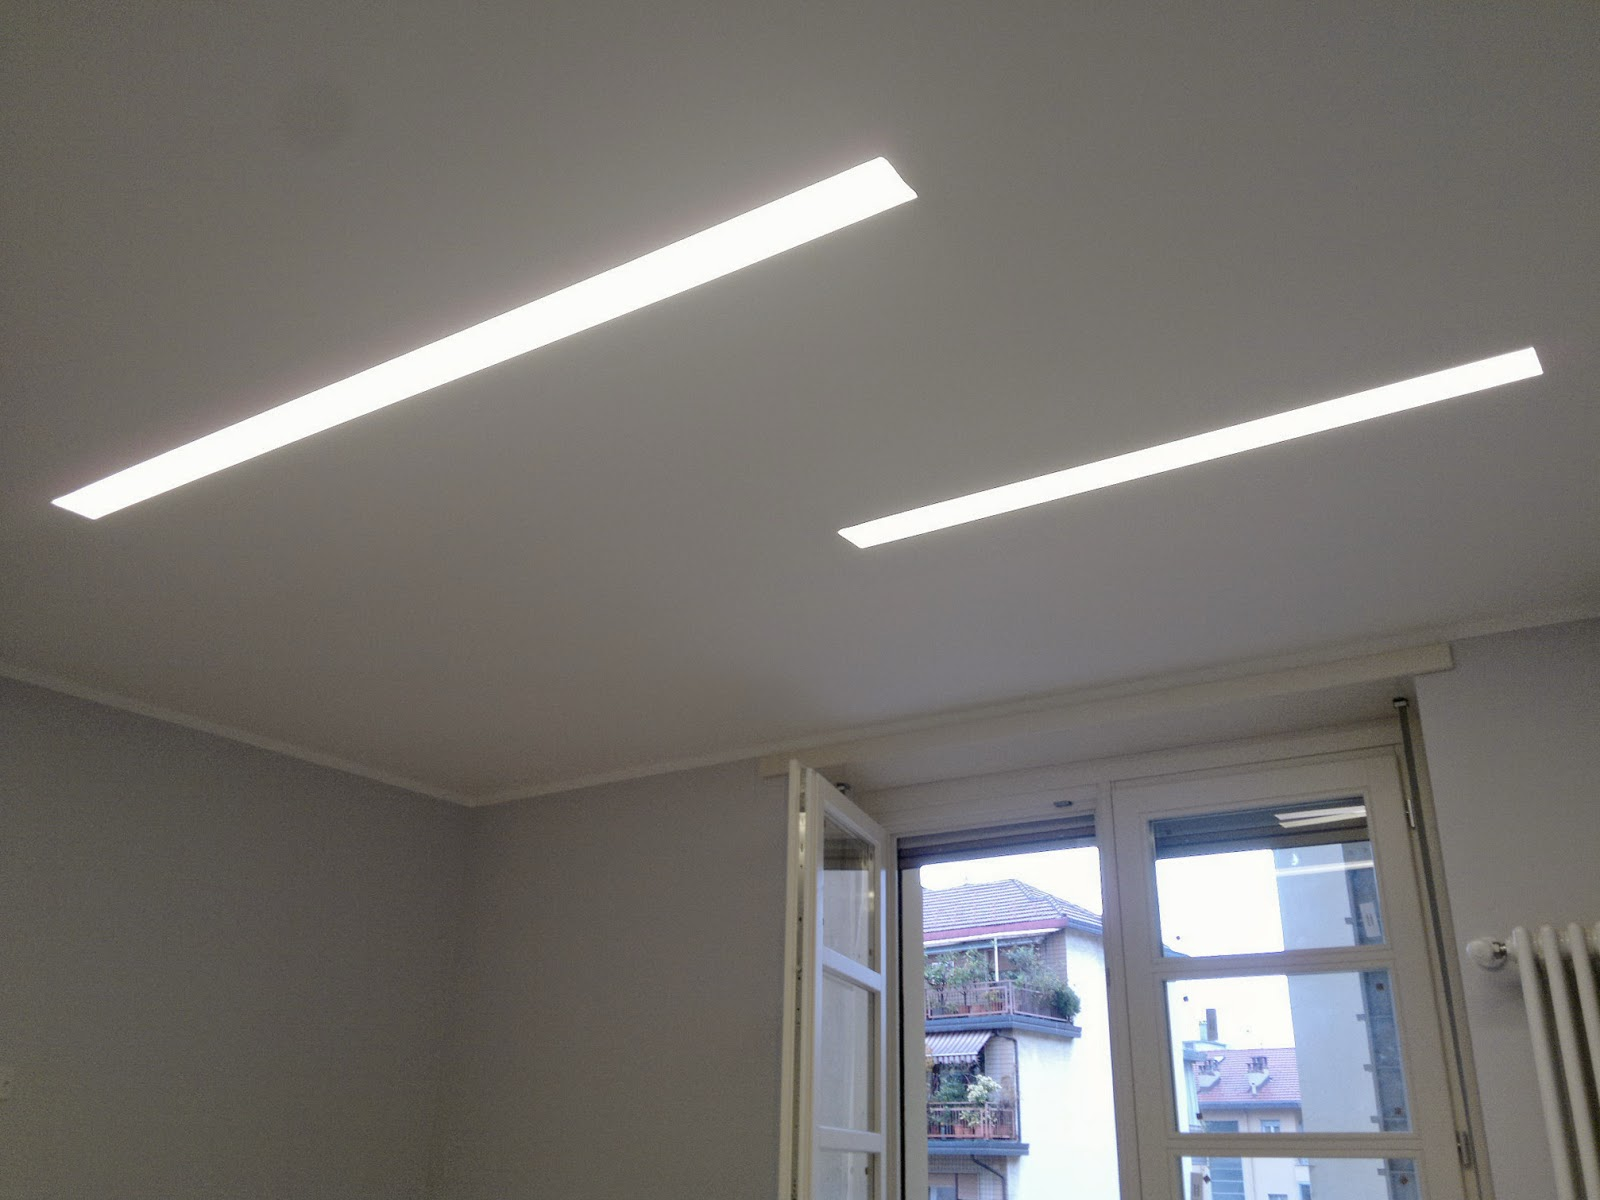 Luci a led per soffitto dz22 regardsdefemmes for Illuminazione a led